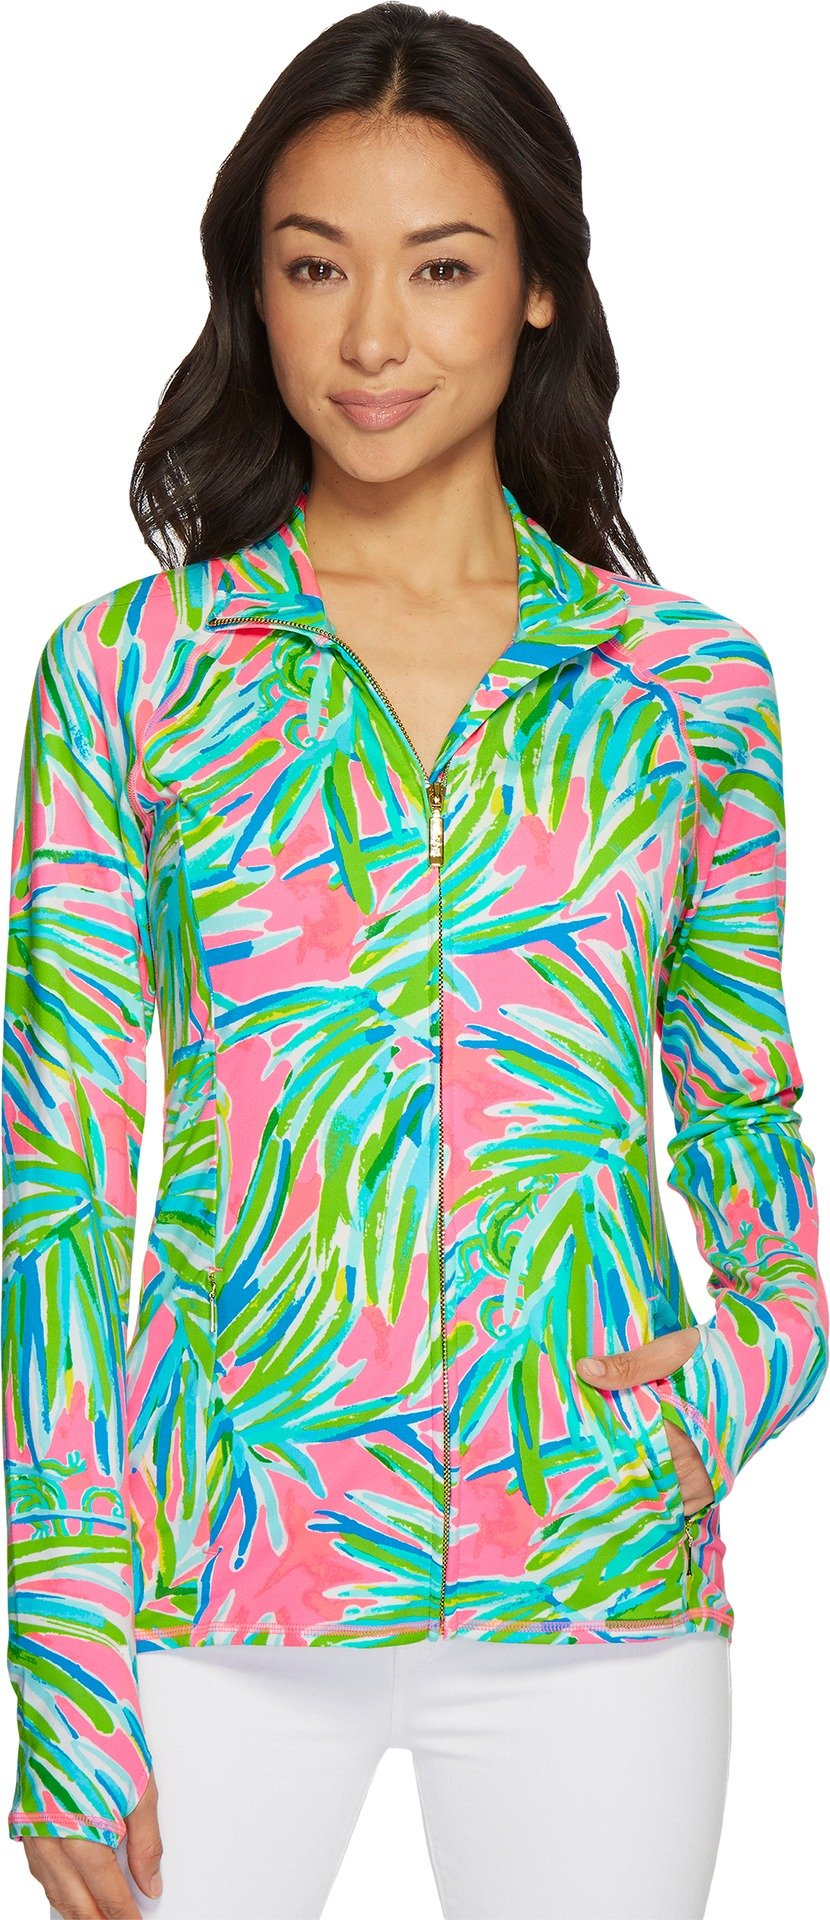 Lilly Pulitzer Women's Luxletic Serena Jacket Pink Sunset Royal Lime Large by Lilly Pulitzer